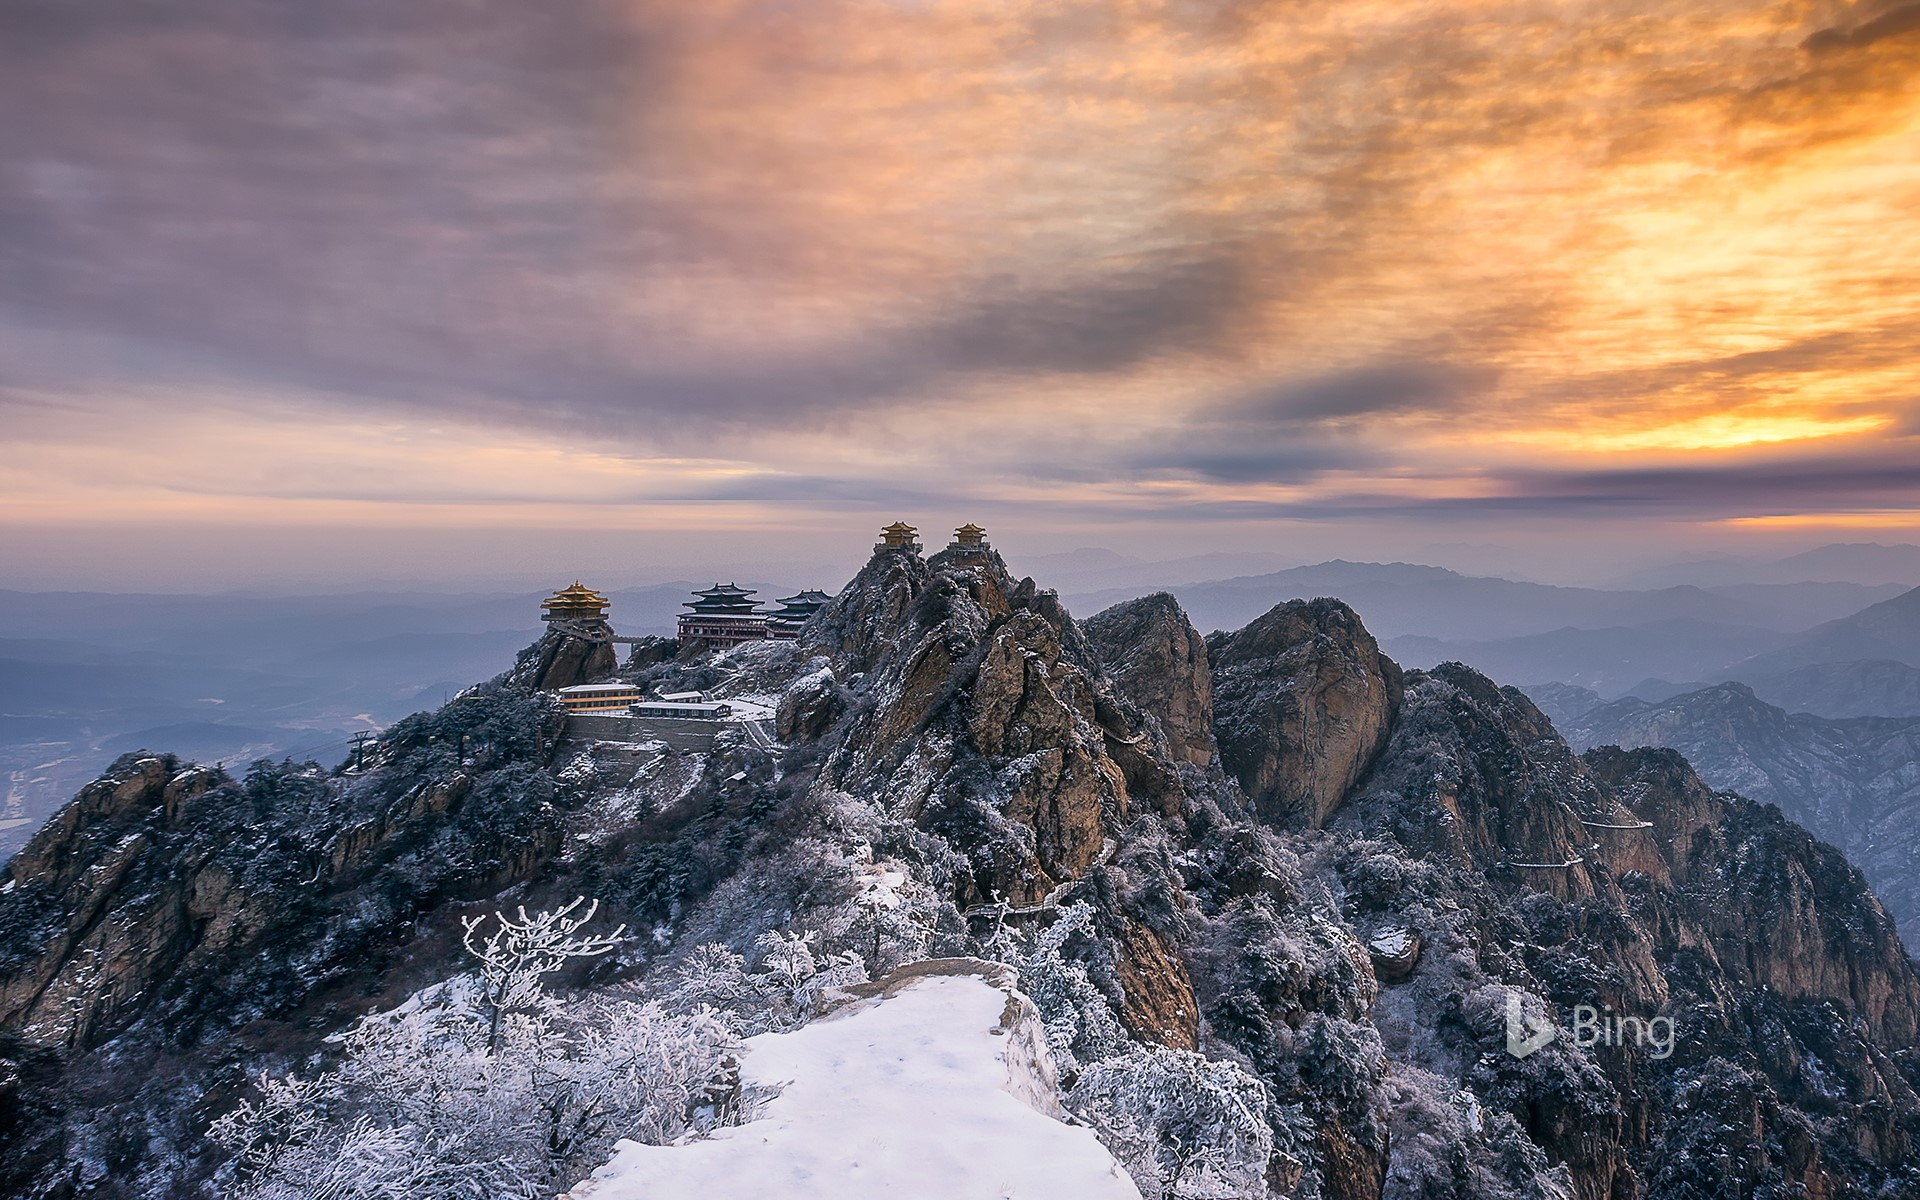 [Xiaoxue today] Sunset view of the temple on the top of Laojun Mountain, Luoyang, Henan Province, China